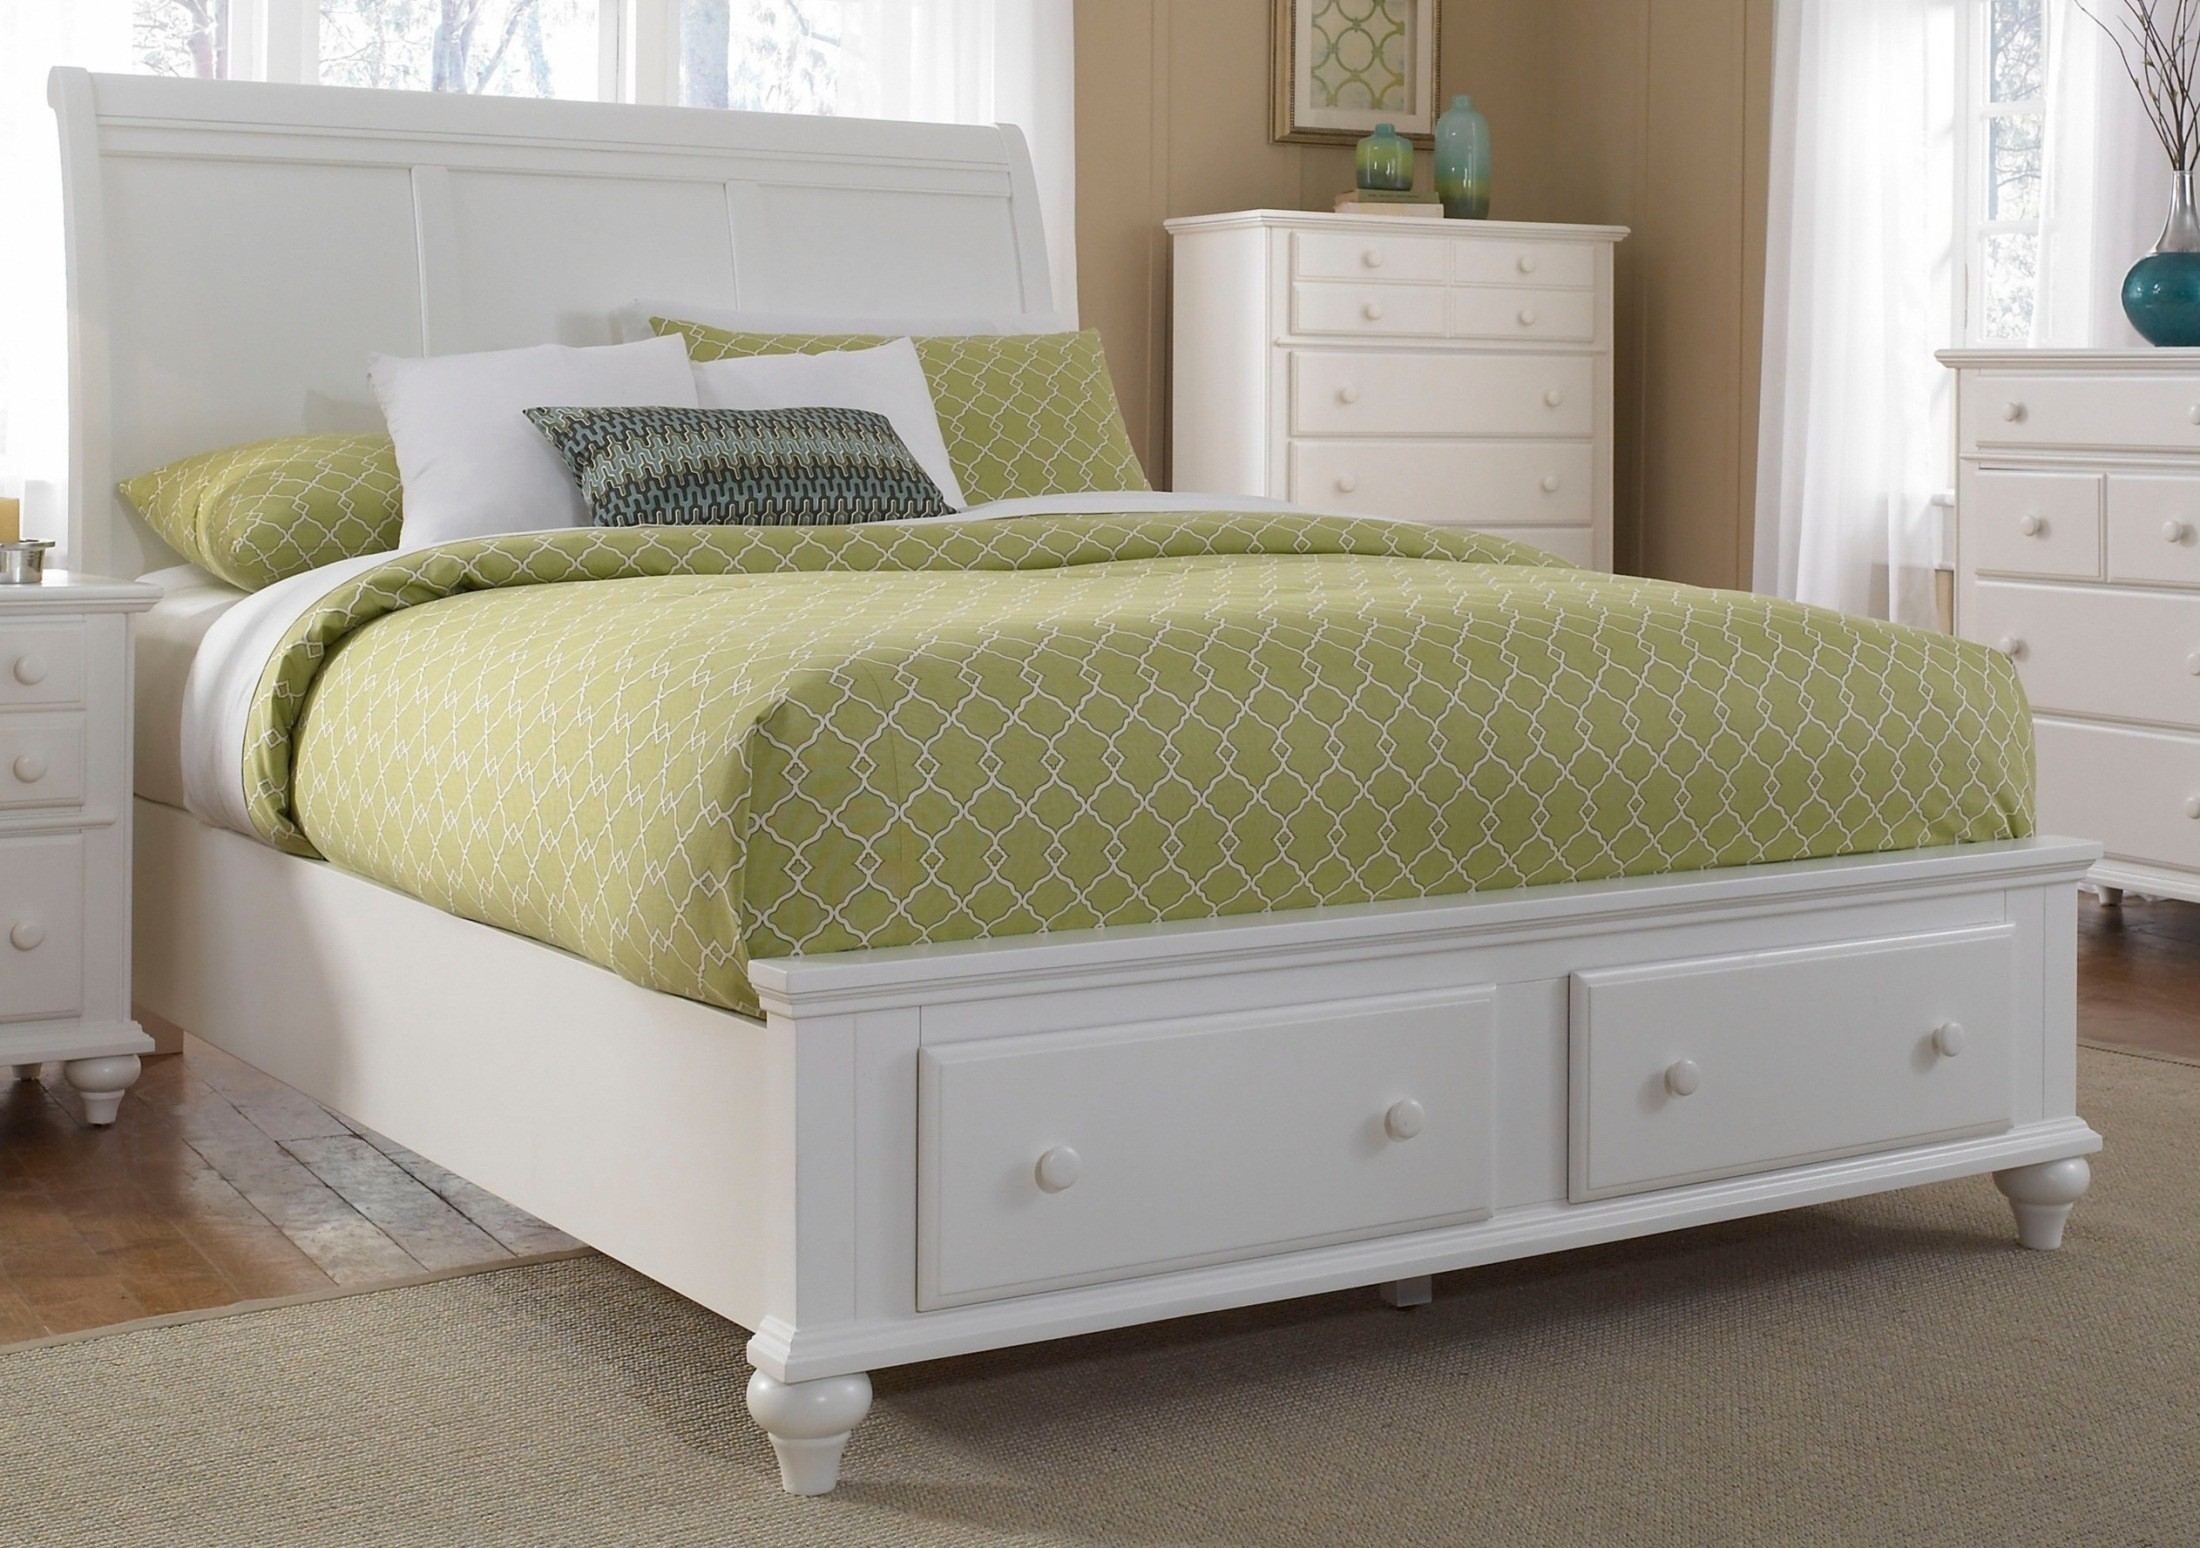 Hayden place white queen storage sleigh bed from broyhill for 5 in 1 bed